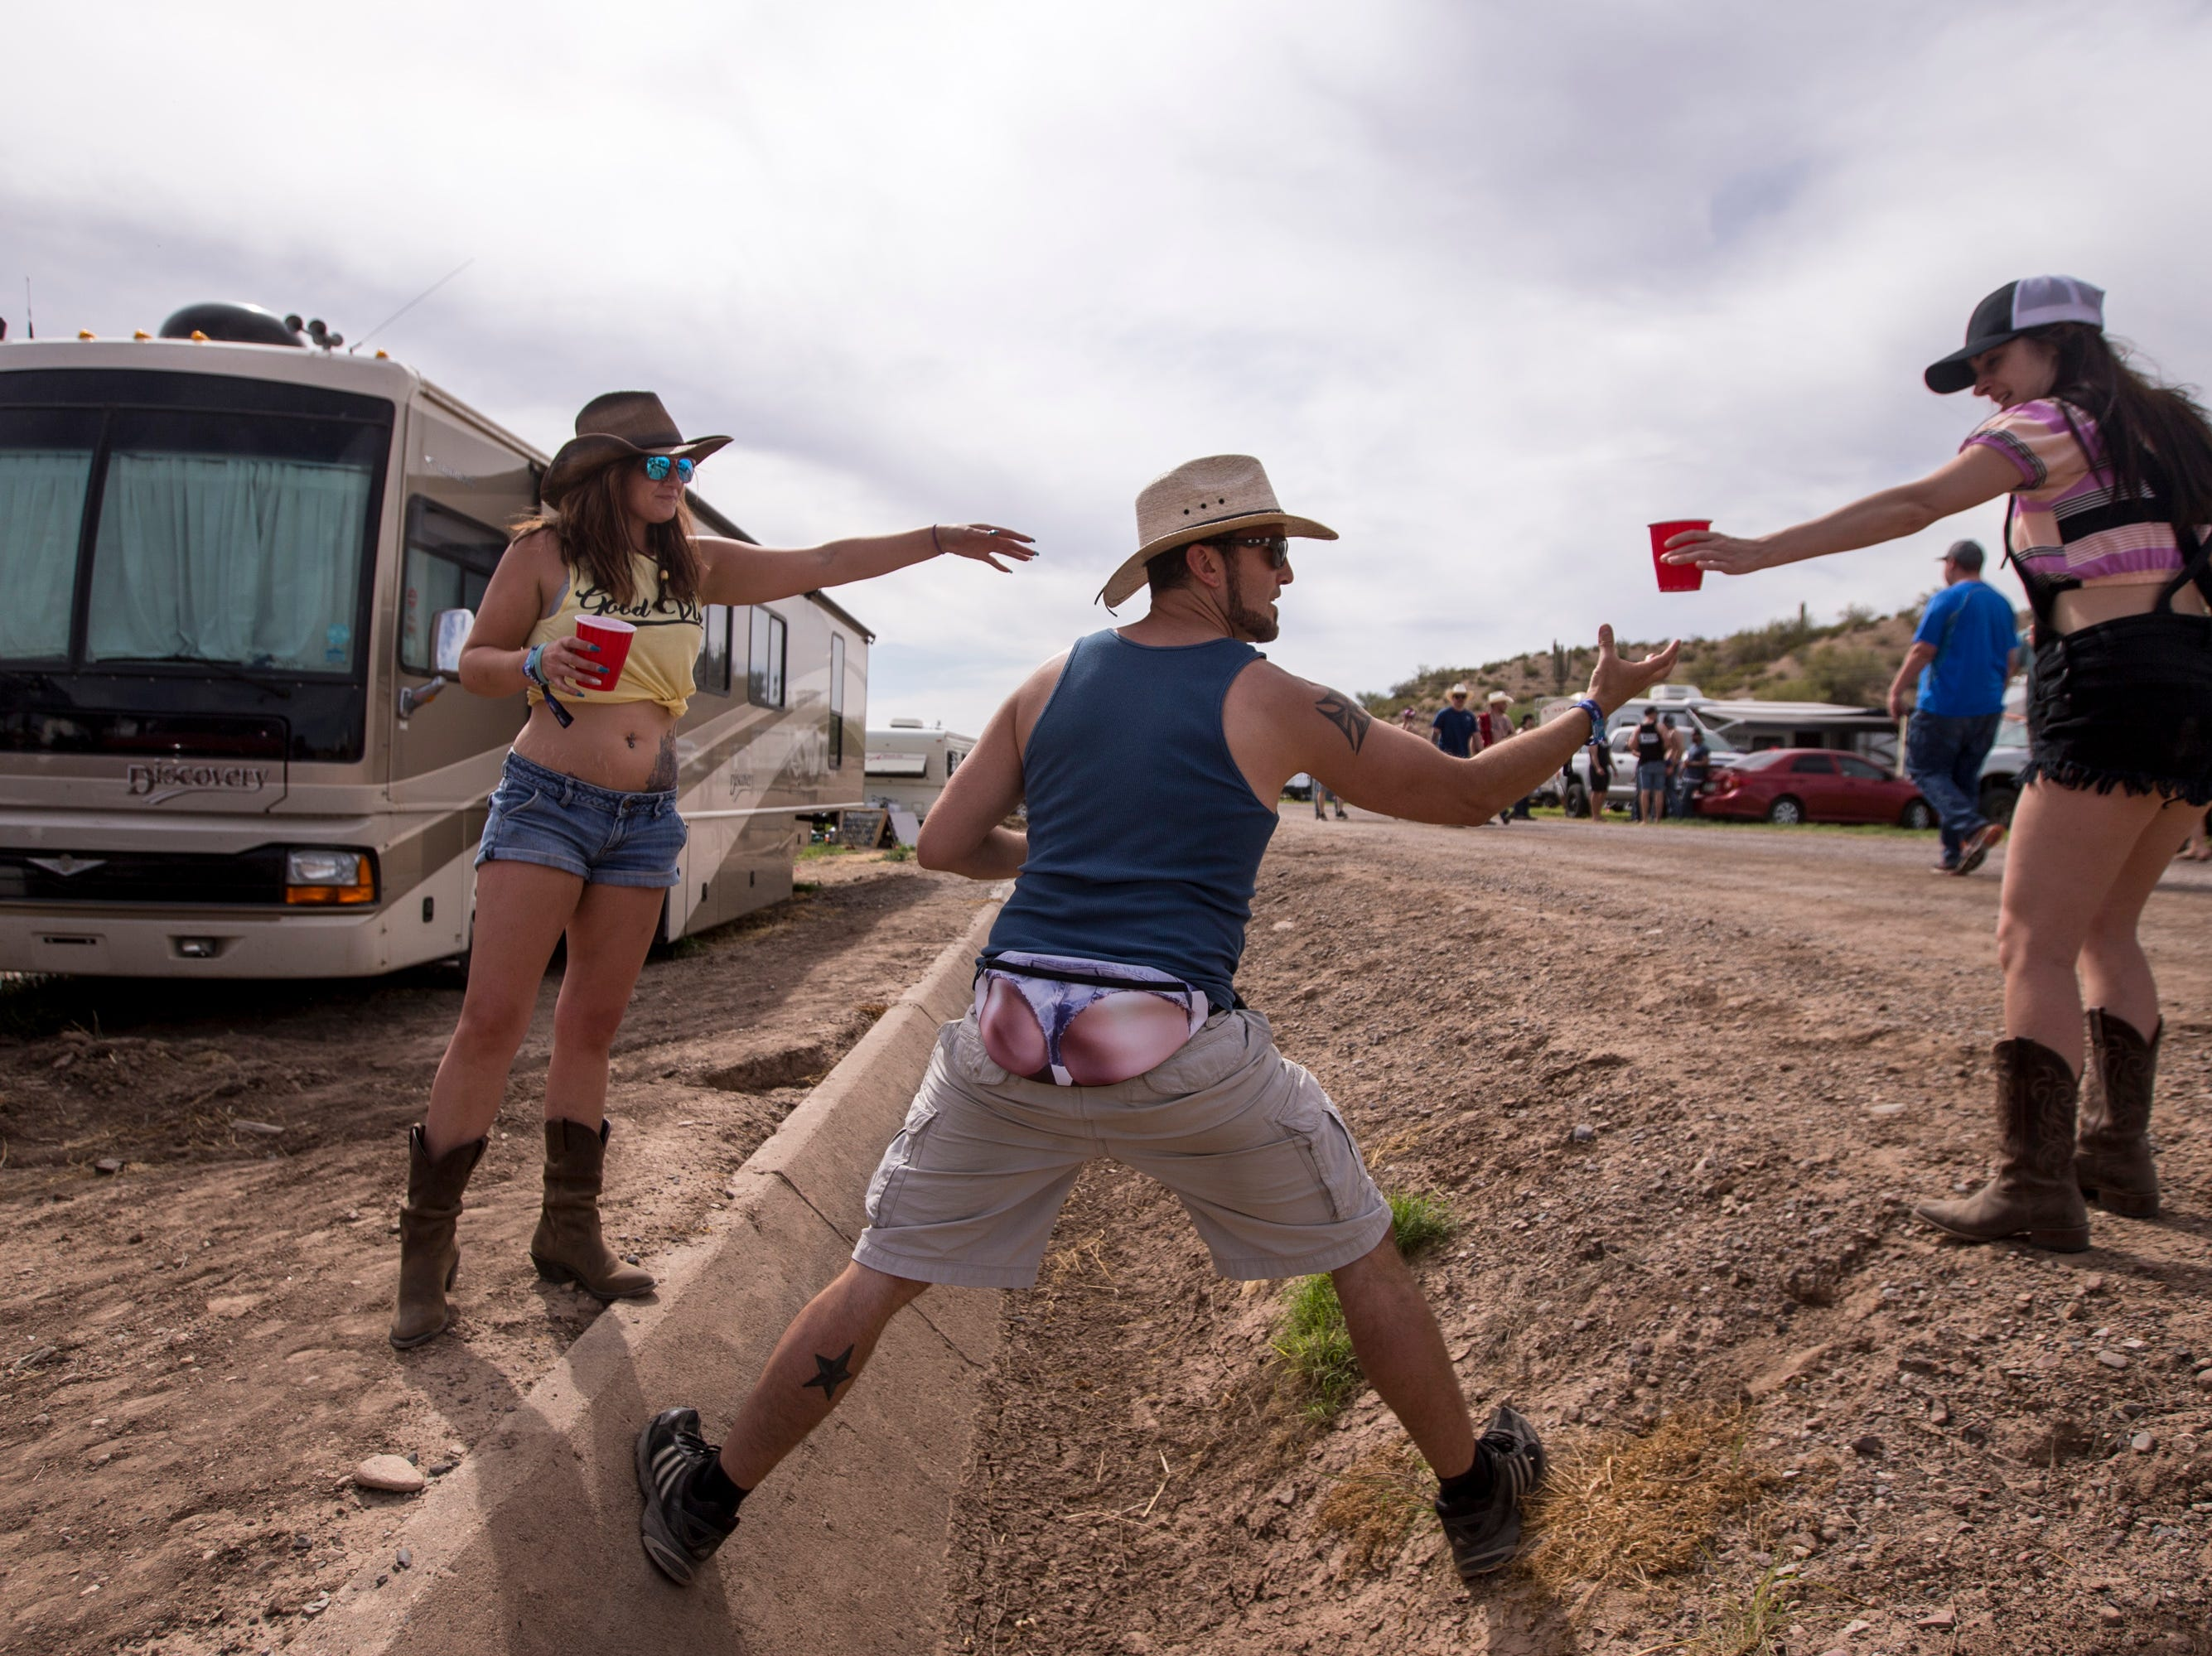 Tawni Williamson (left) watches as Andrew WK Hefley helps Brooke Humphrey cross a drainage ditch on April 11, 2019, during Day 1 of Country Thunder Arizona in Florence.